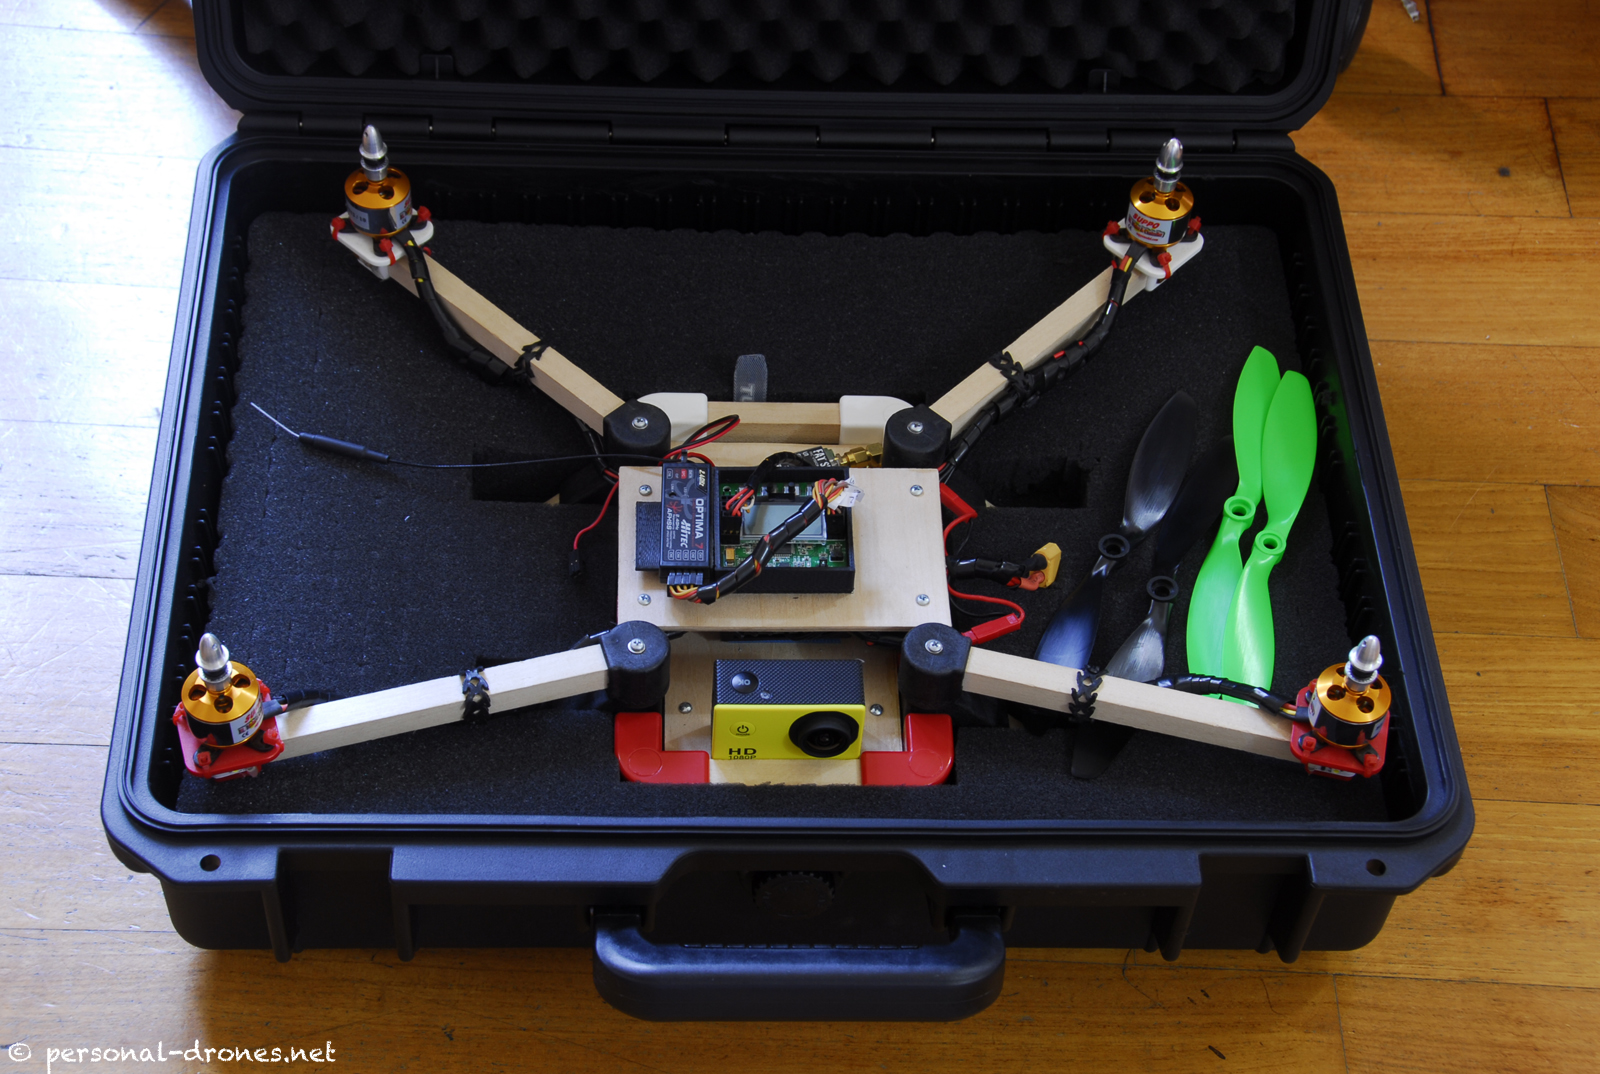 An hard case for the Quadlugs quadcopter